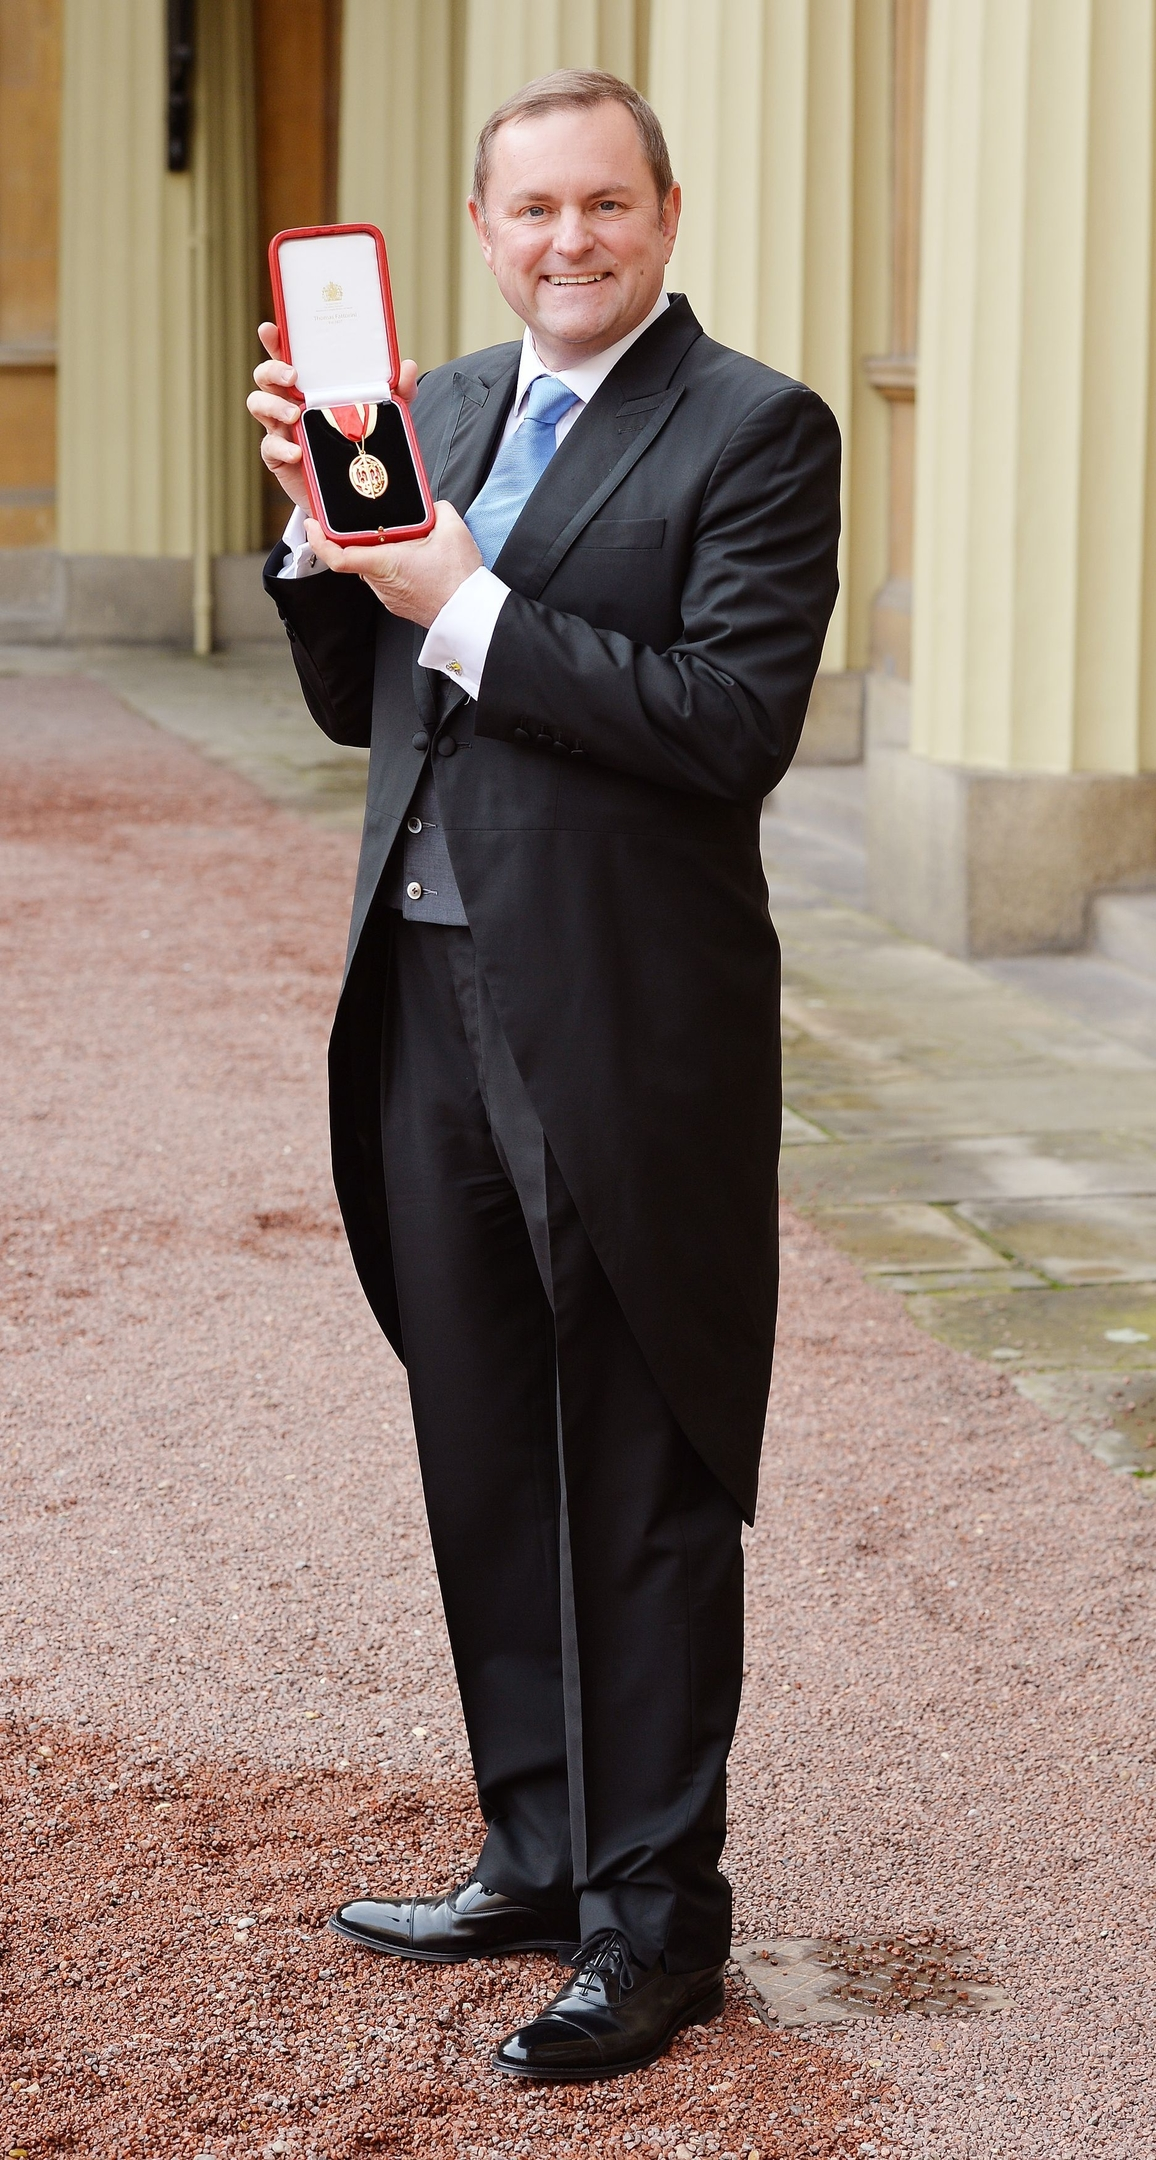 Sir Gary Verity holds his insignia of Knighthood which was presented by the Prince of Wales at the Investiture ceremony in Buckingham Palace, London.